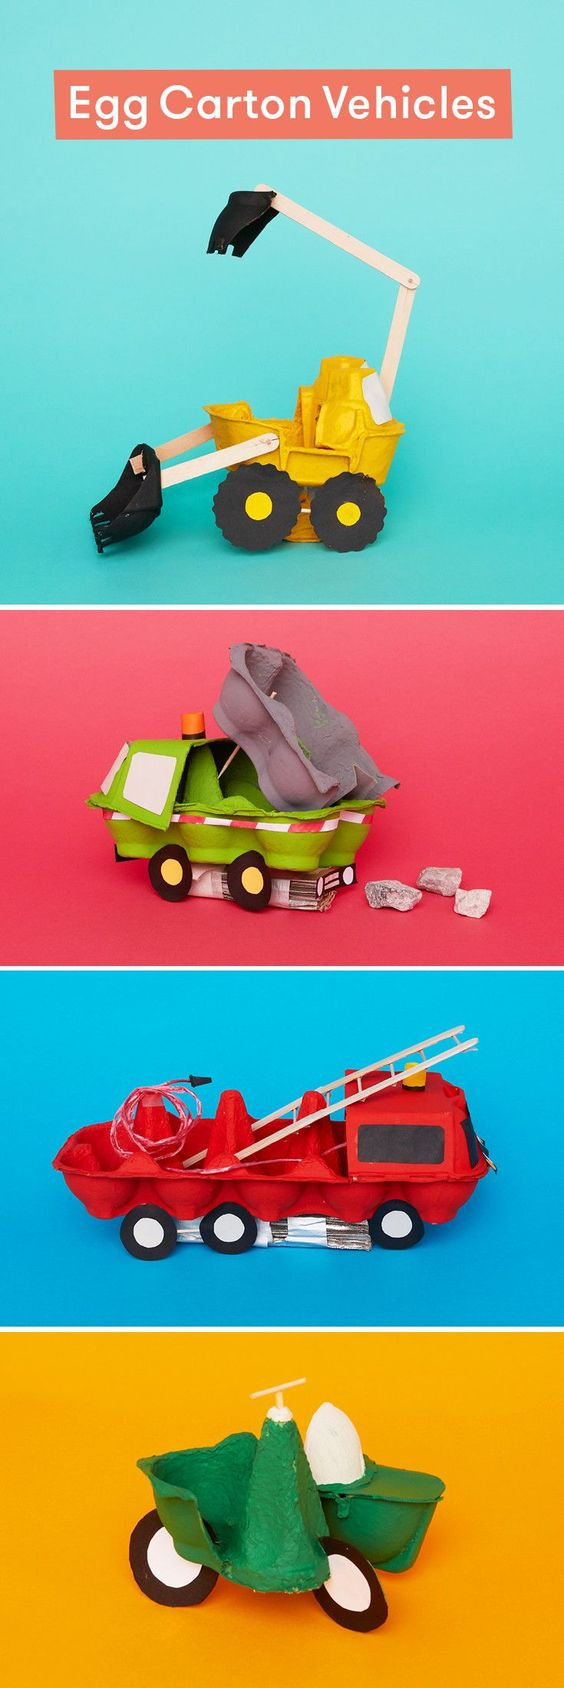 Turn egg cartons into vehicles with this ingenious cardboard craft for kids.: